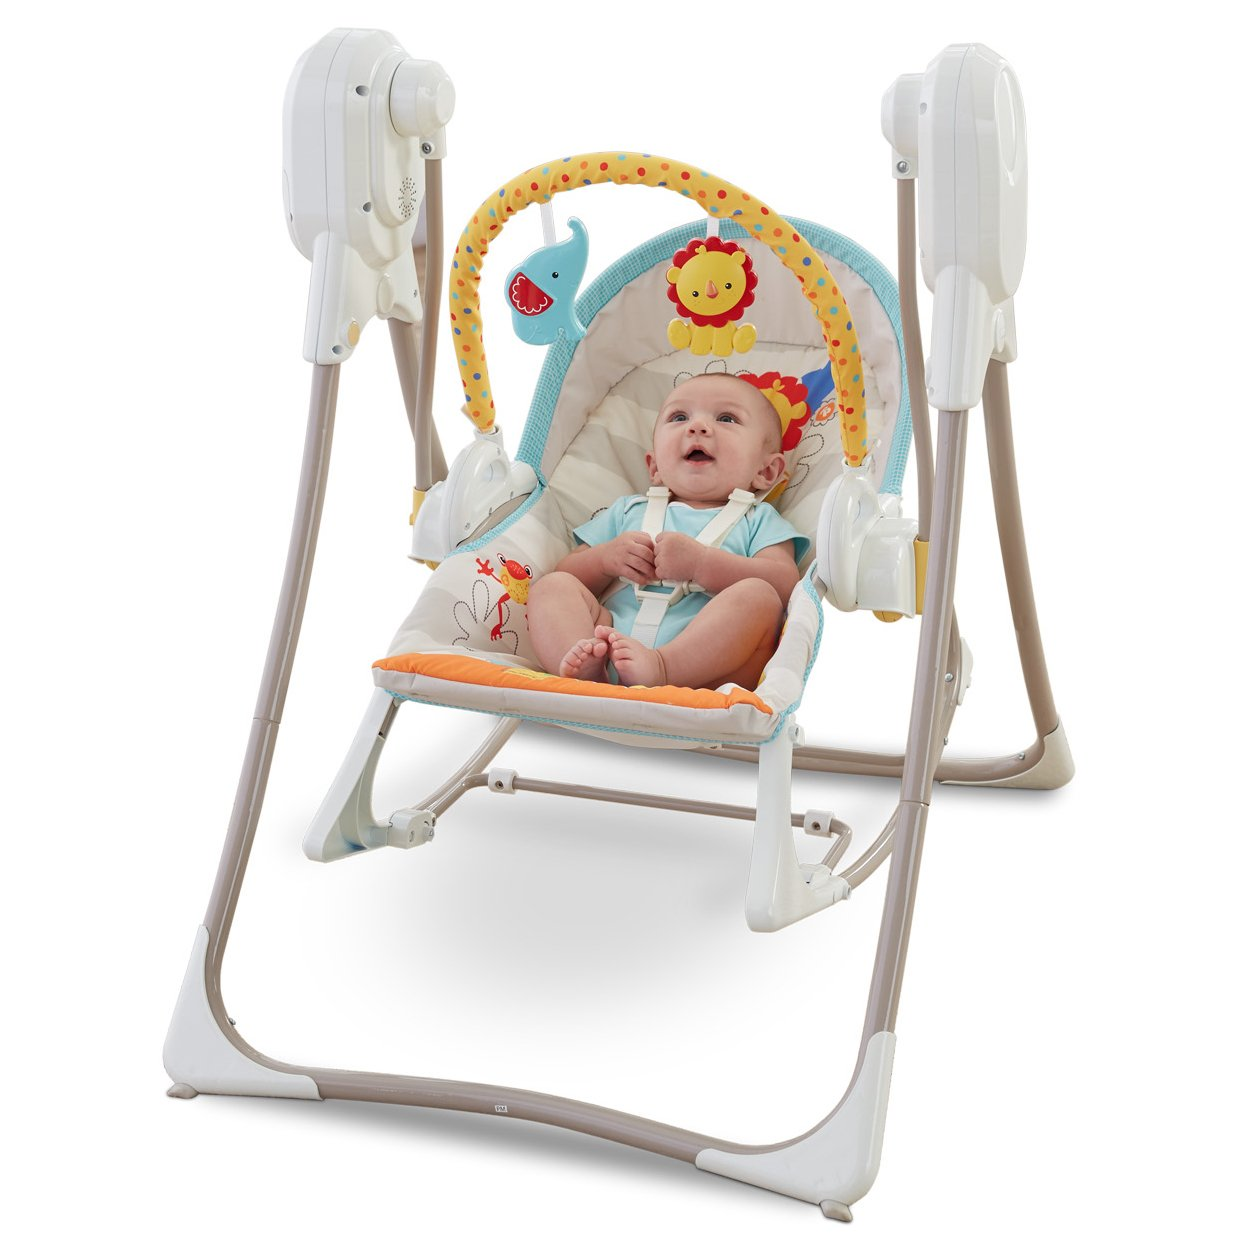 Fisher-Price 3-in-1 Baby Infant Swing-n-Rocker Chair ...